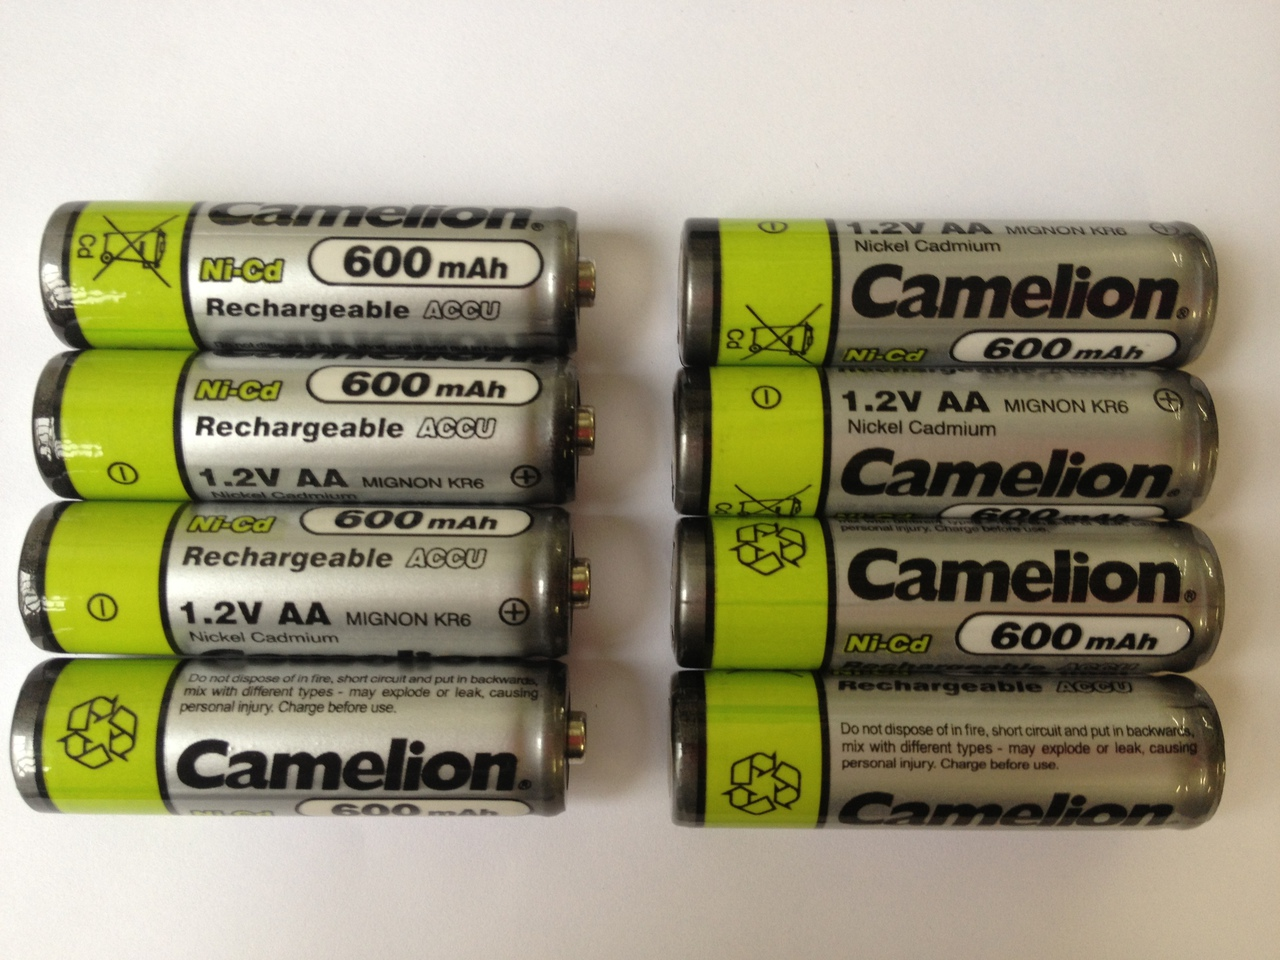 Camelion AA Rechargeable NiCD Batteries 600mAH 8 Pack + FREE SHIPPING!